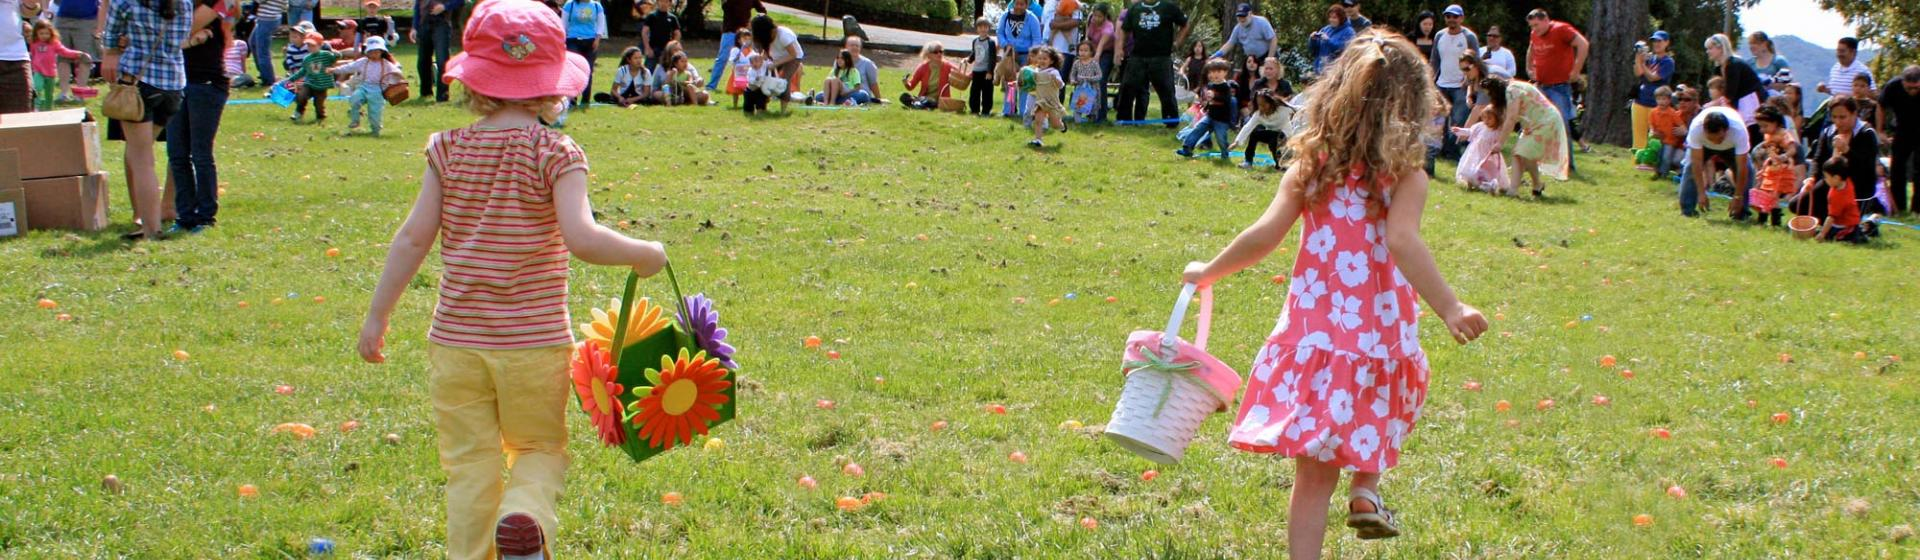 Easter Egg Hunts in Marin